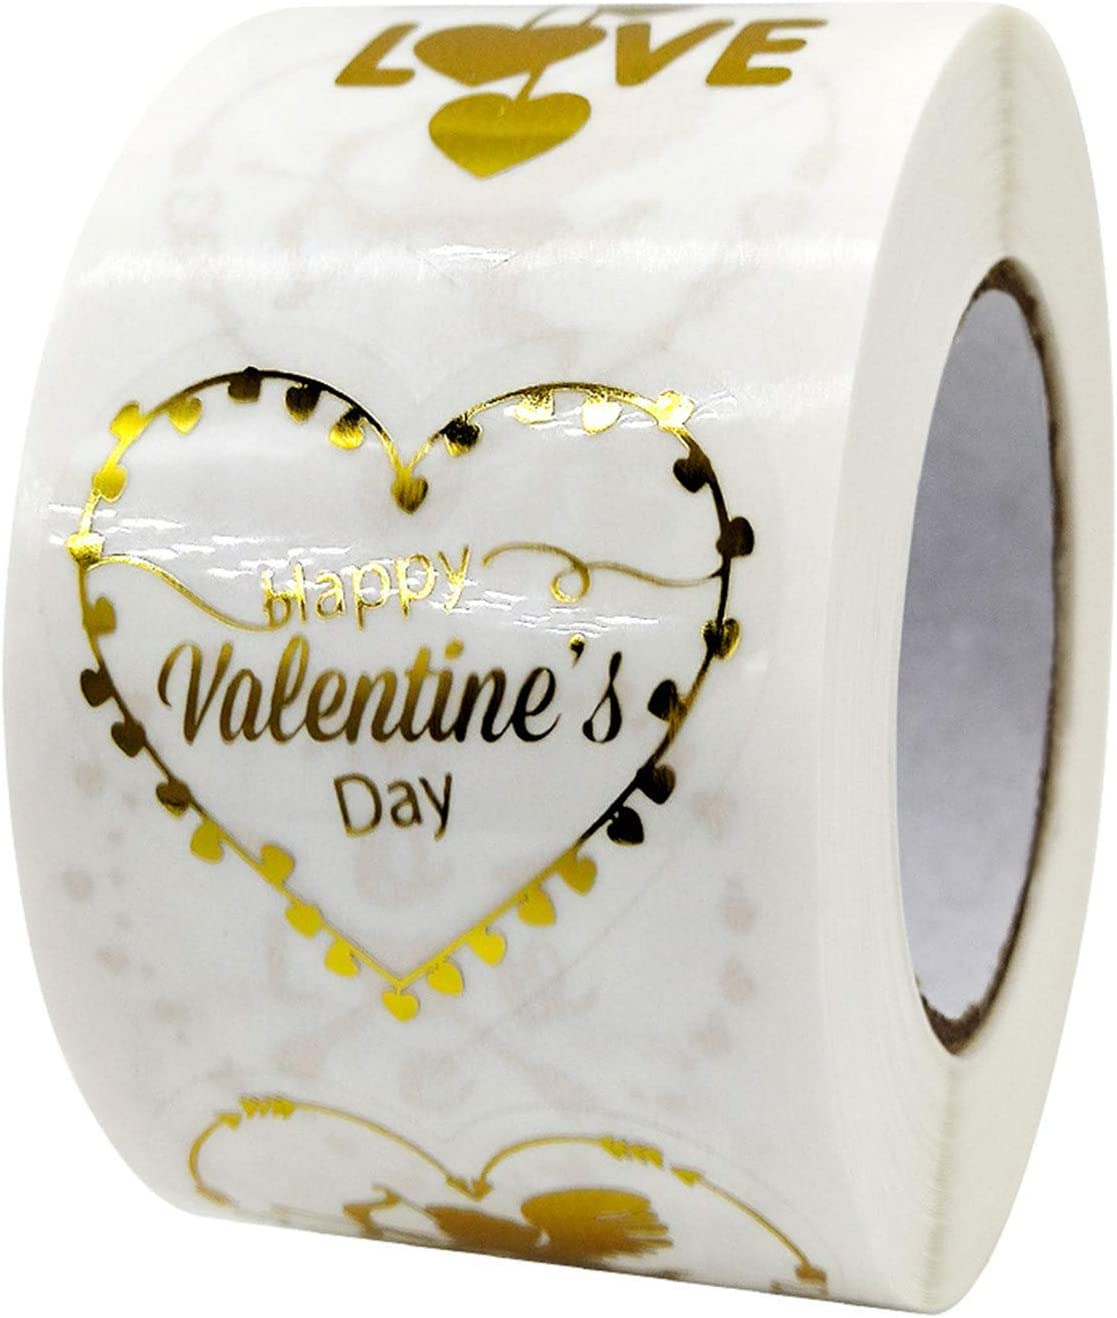 Heart Shap Transparent with Love,Angle and Happy Valentines Day Printed Love Heart Shaped Circle Sticker for Wedding Festival Gift Wrapping Jourad 1 Roll Labels Decorative Stickers